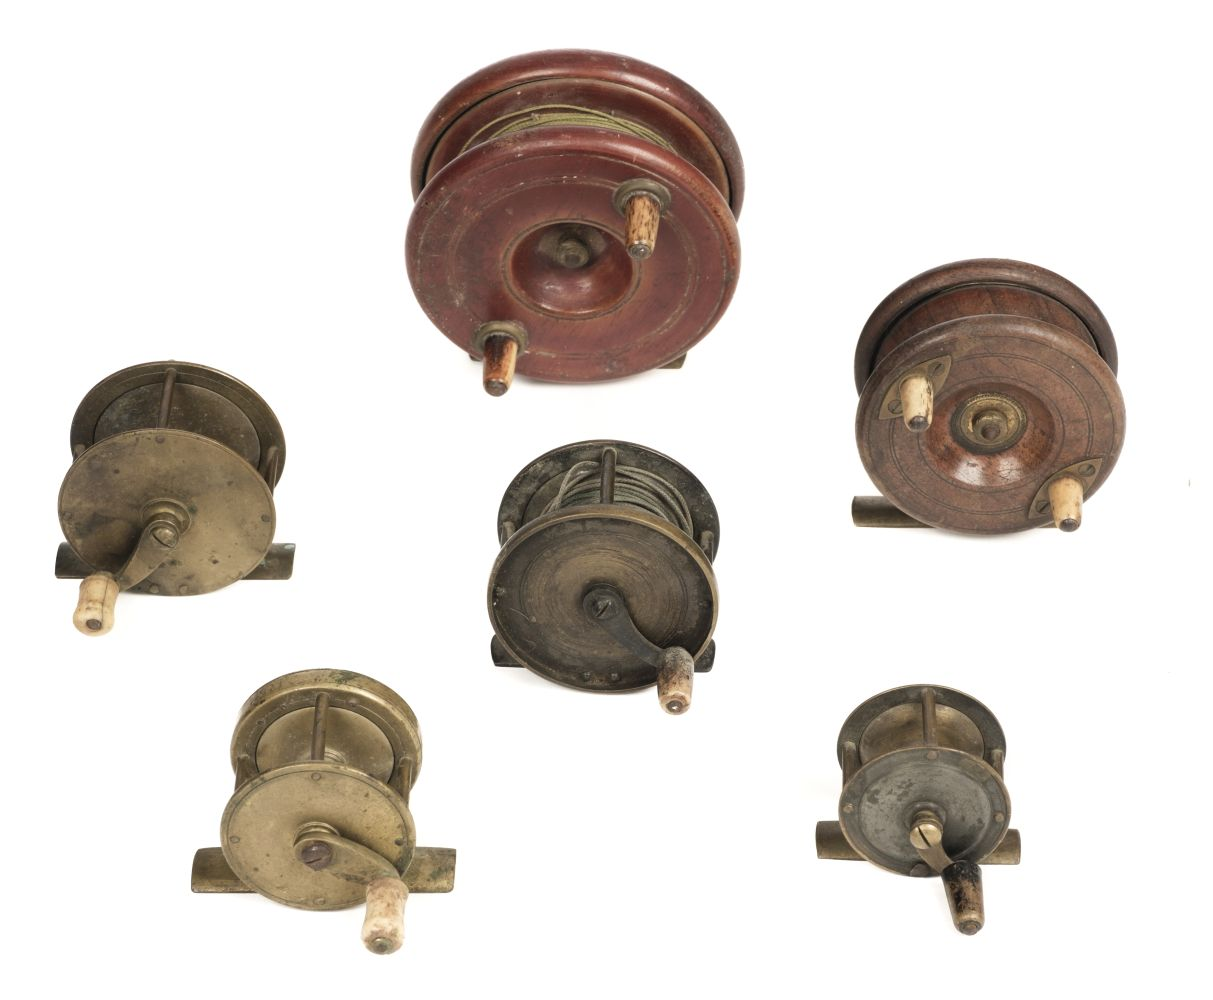 * Fishing Reels. A collection of brass and wooden reels